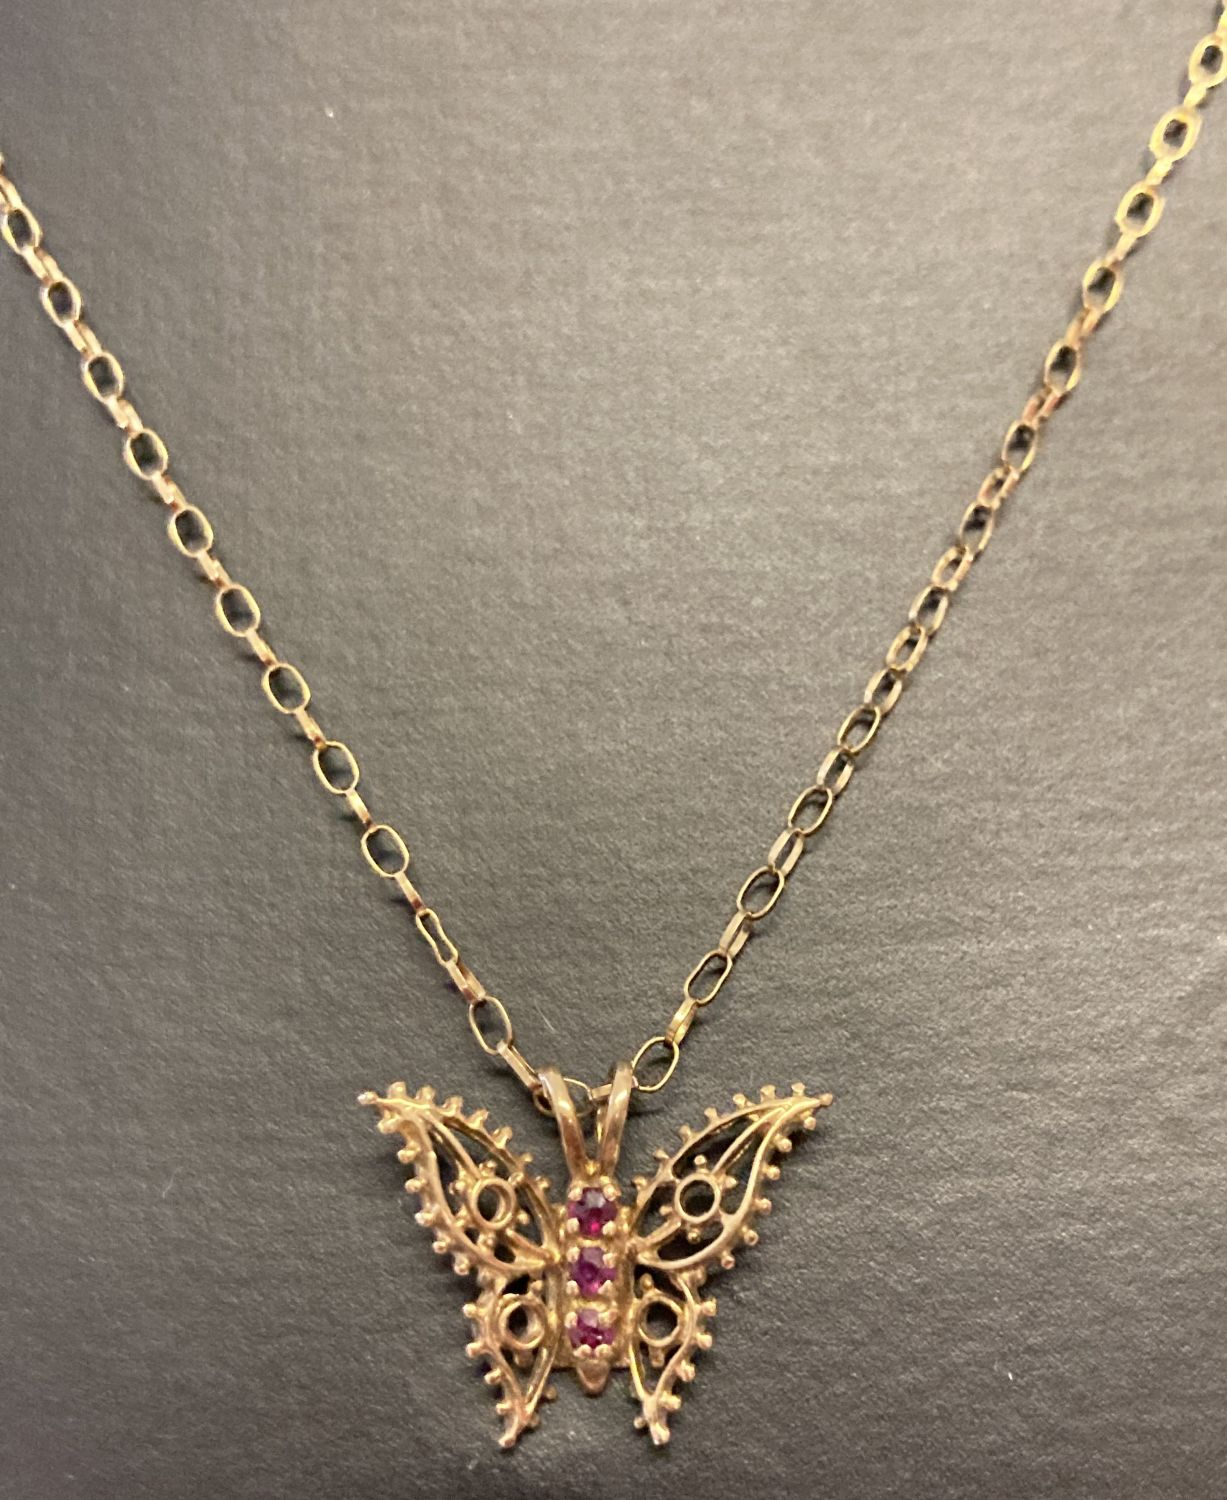 A gold open work butterfly pendant set with 3 small rubies, on an 18 inch belcher chain.